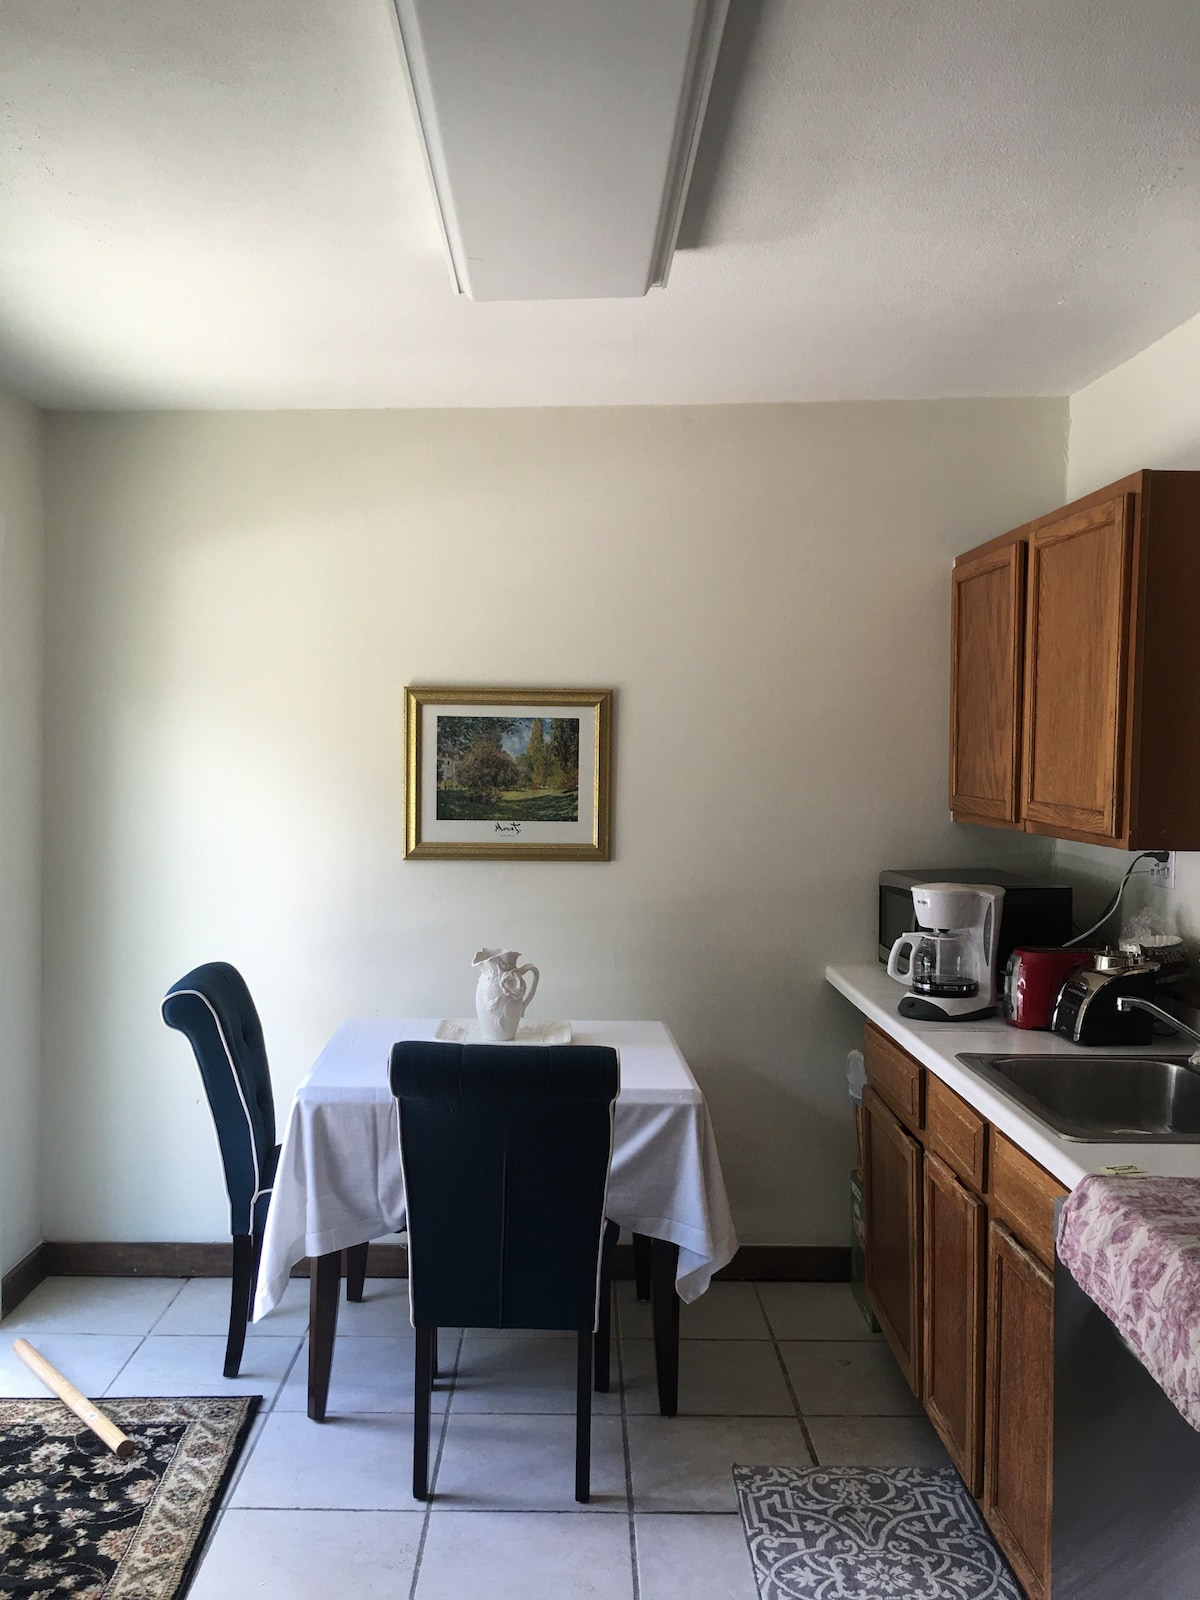 Downtown New Haven Spacious Apt   Apartments For Rent In New Haven,  Connecticut, United States